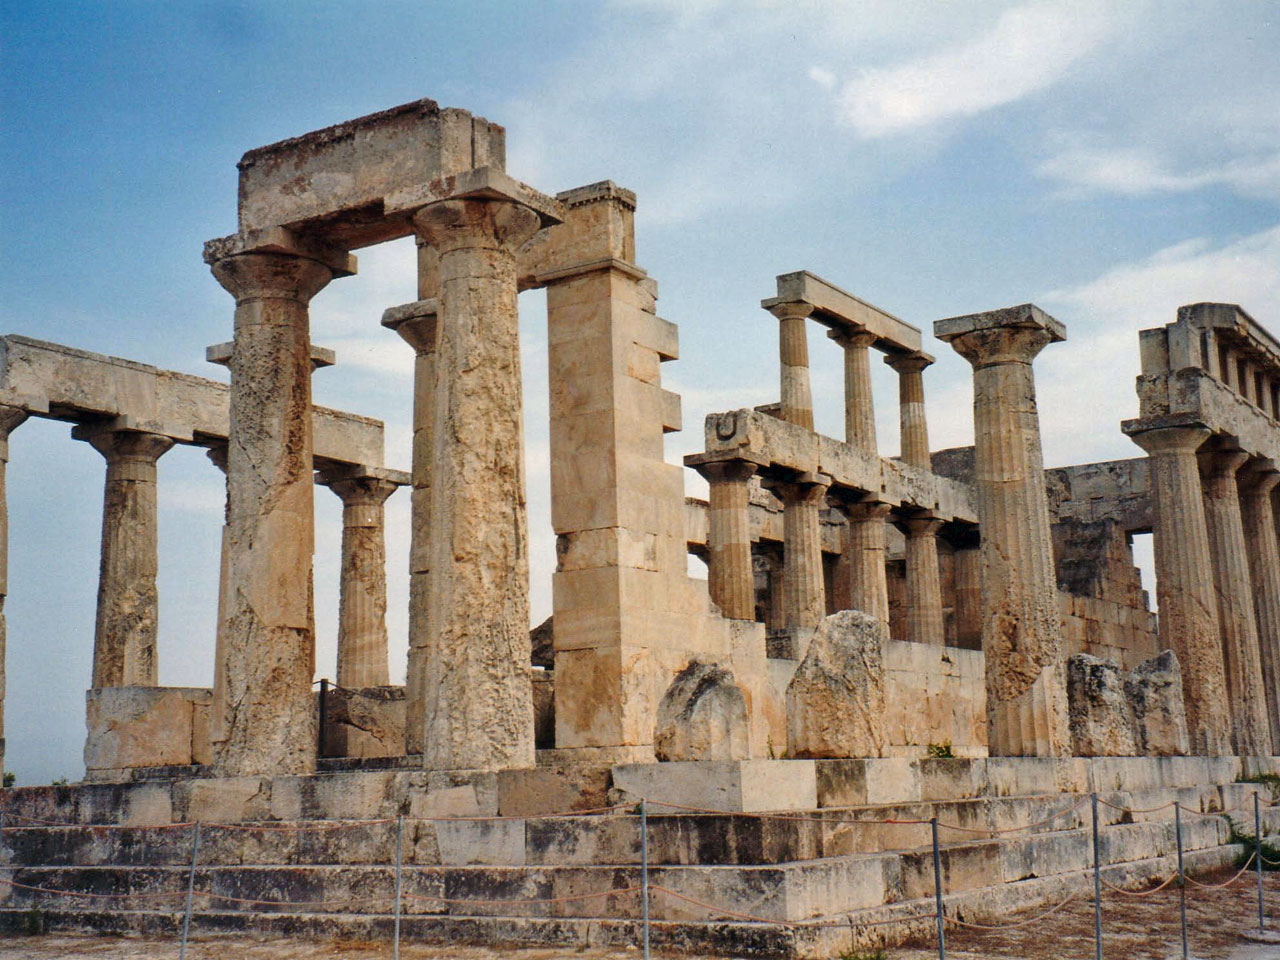 File:Aegina, The Temple of Aphaia 1.jpg - Wikimedia Commons